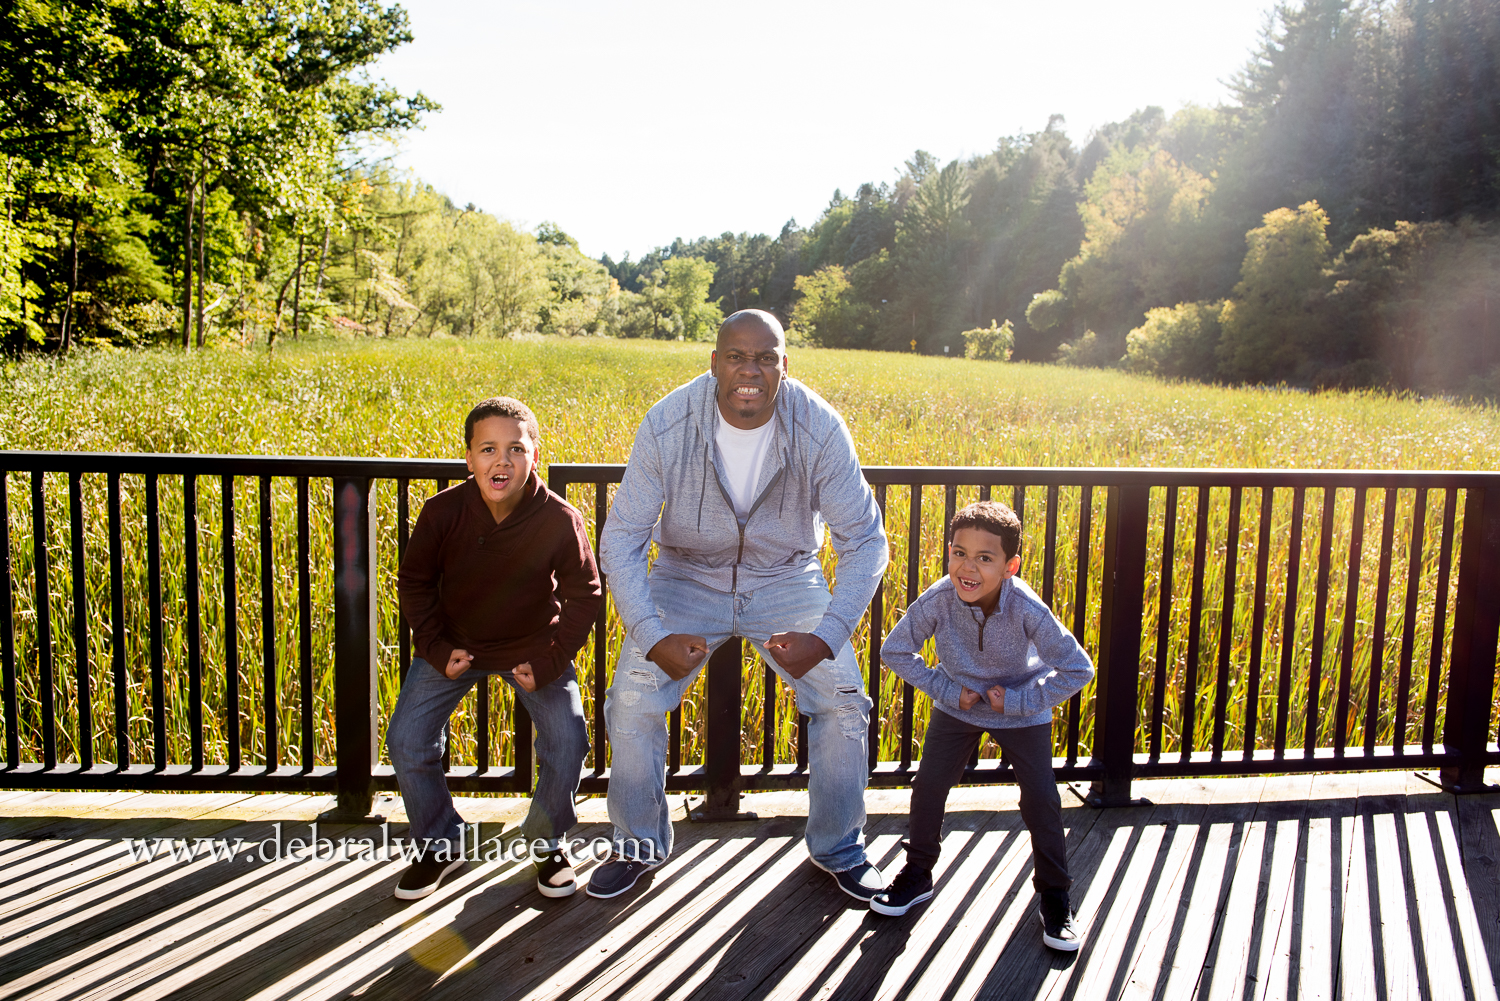 tamarack-swamp-durand-eastman-park-family-photography-boardwalk-8760